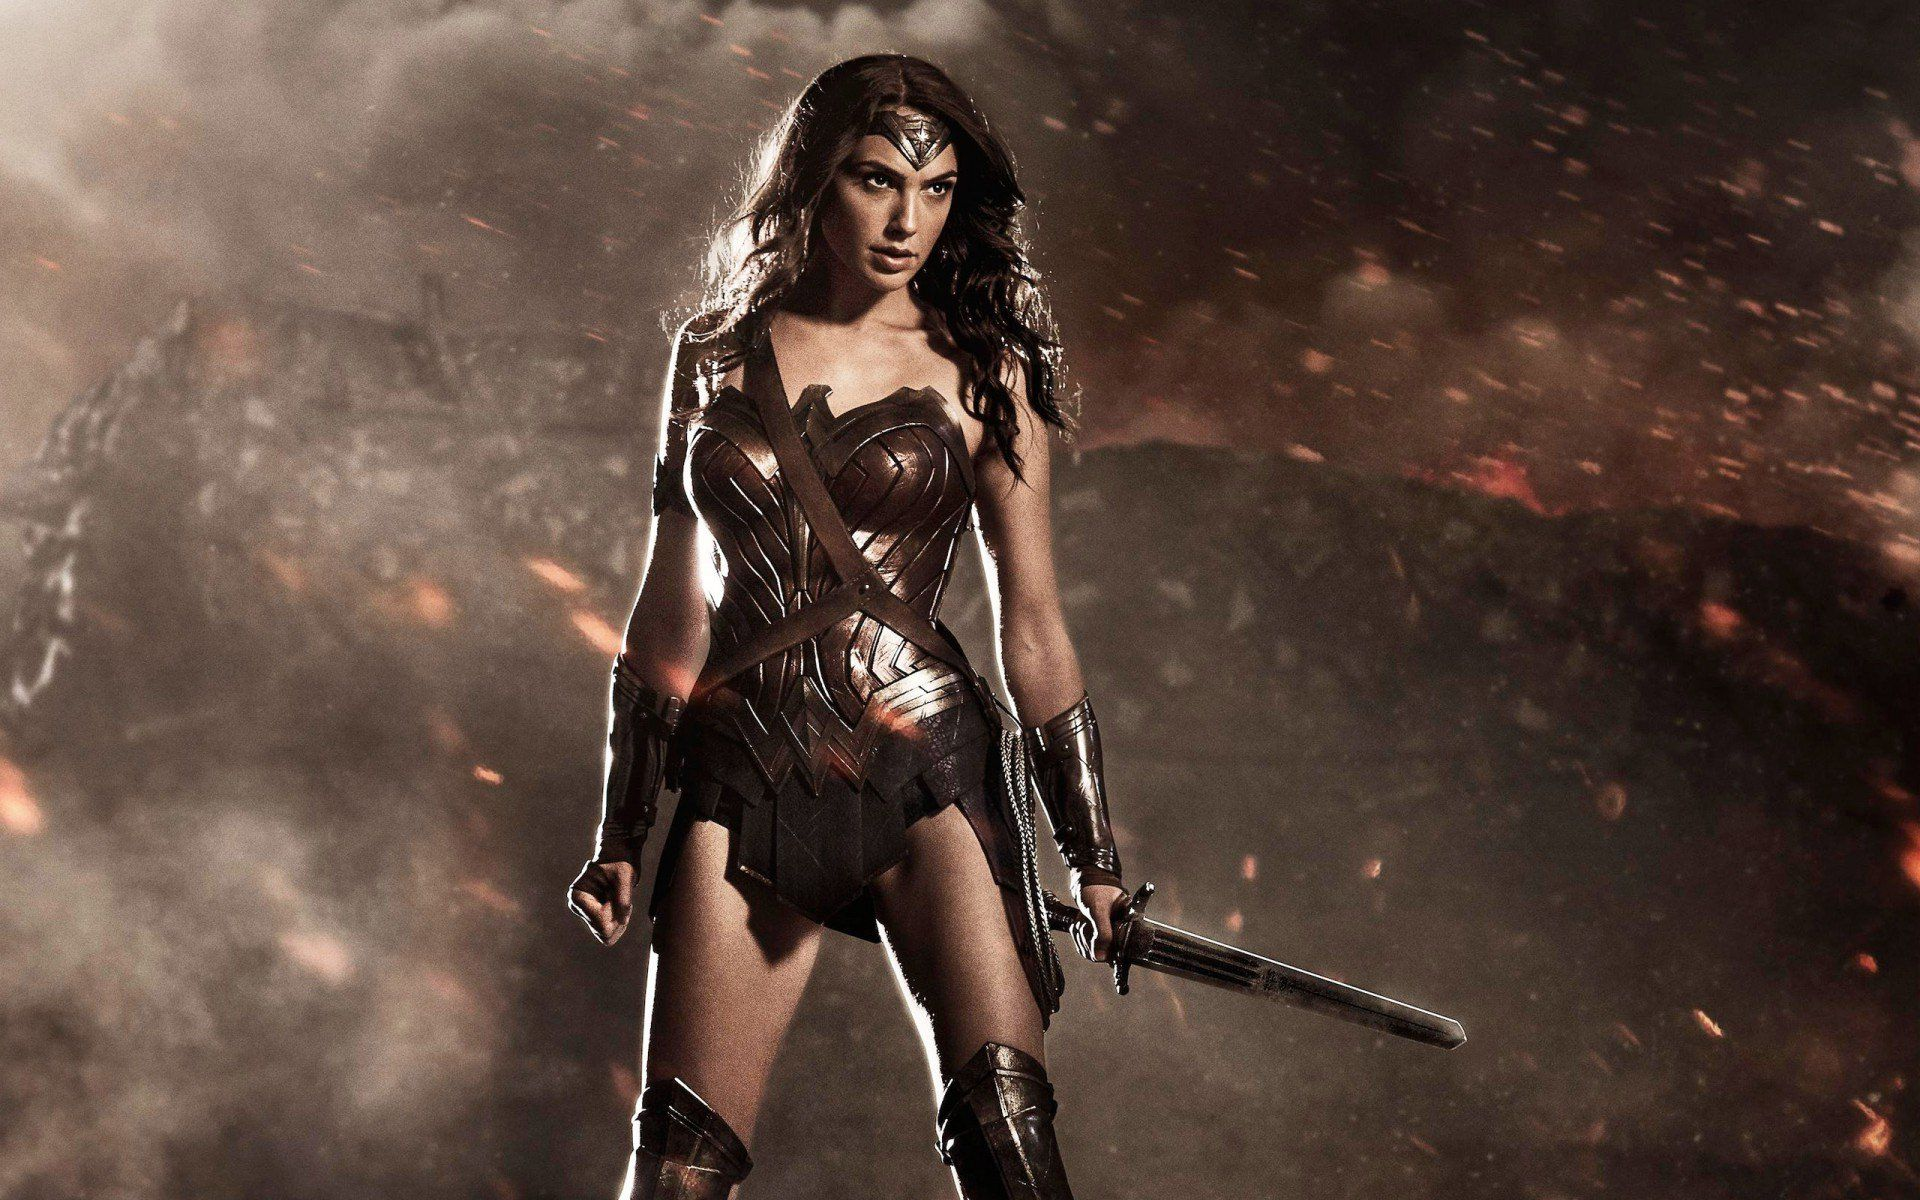 Films With Female Leads Earn More At The Box Office Study Finds